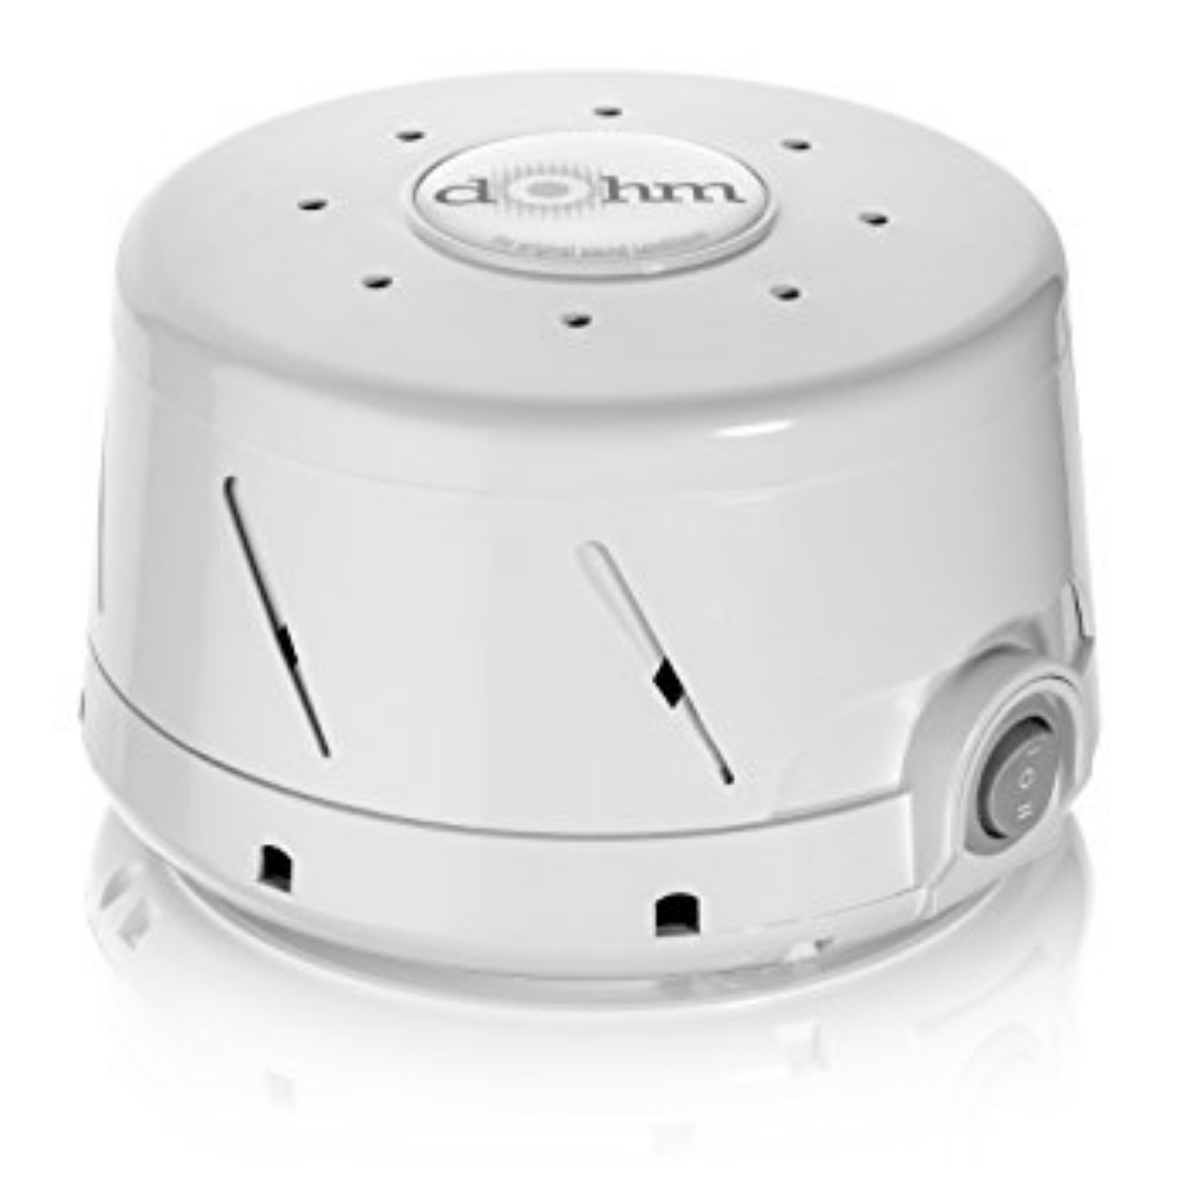 Marpac Dohm for Baby Natural White Noise Machine Sound Therapy for Babies